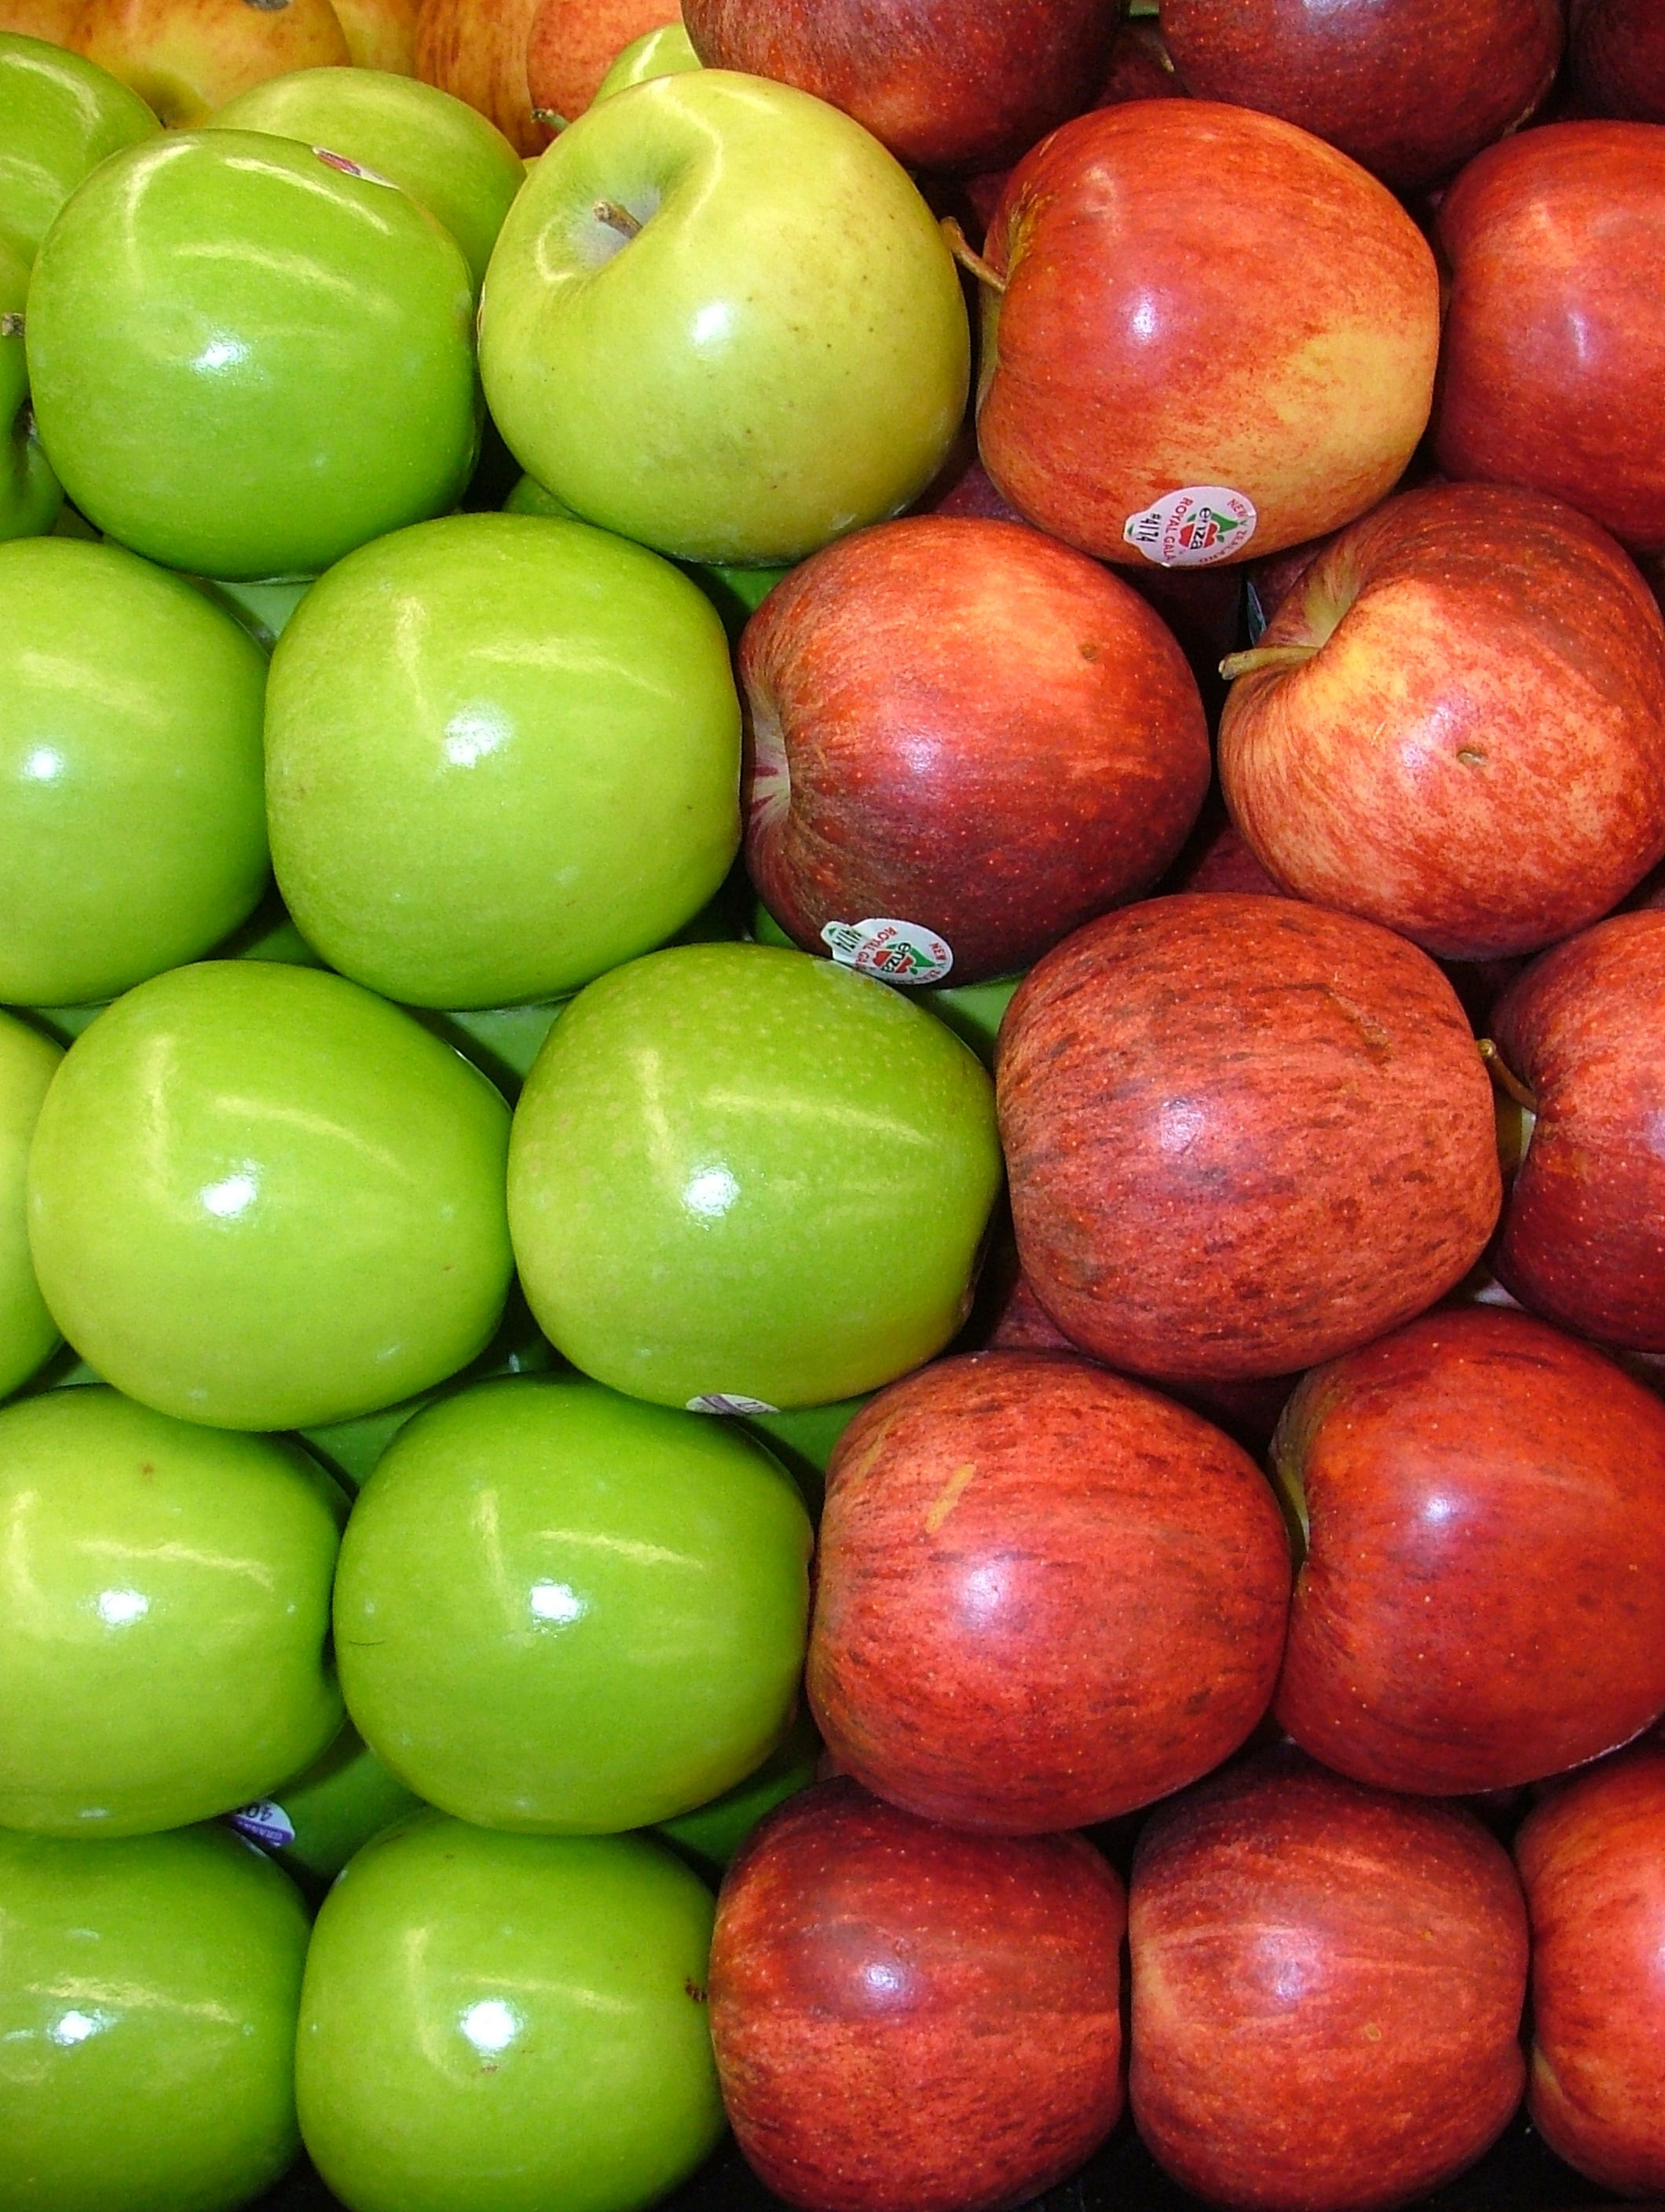 green and red apples. file:assorted red and green apples 2120px.jpg